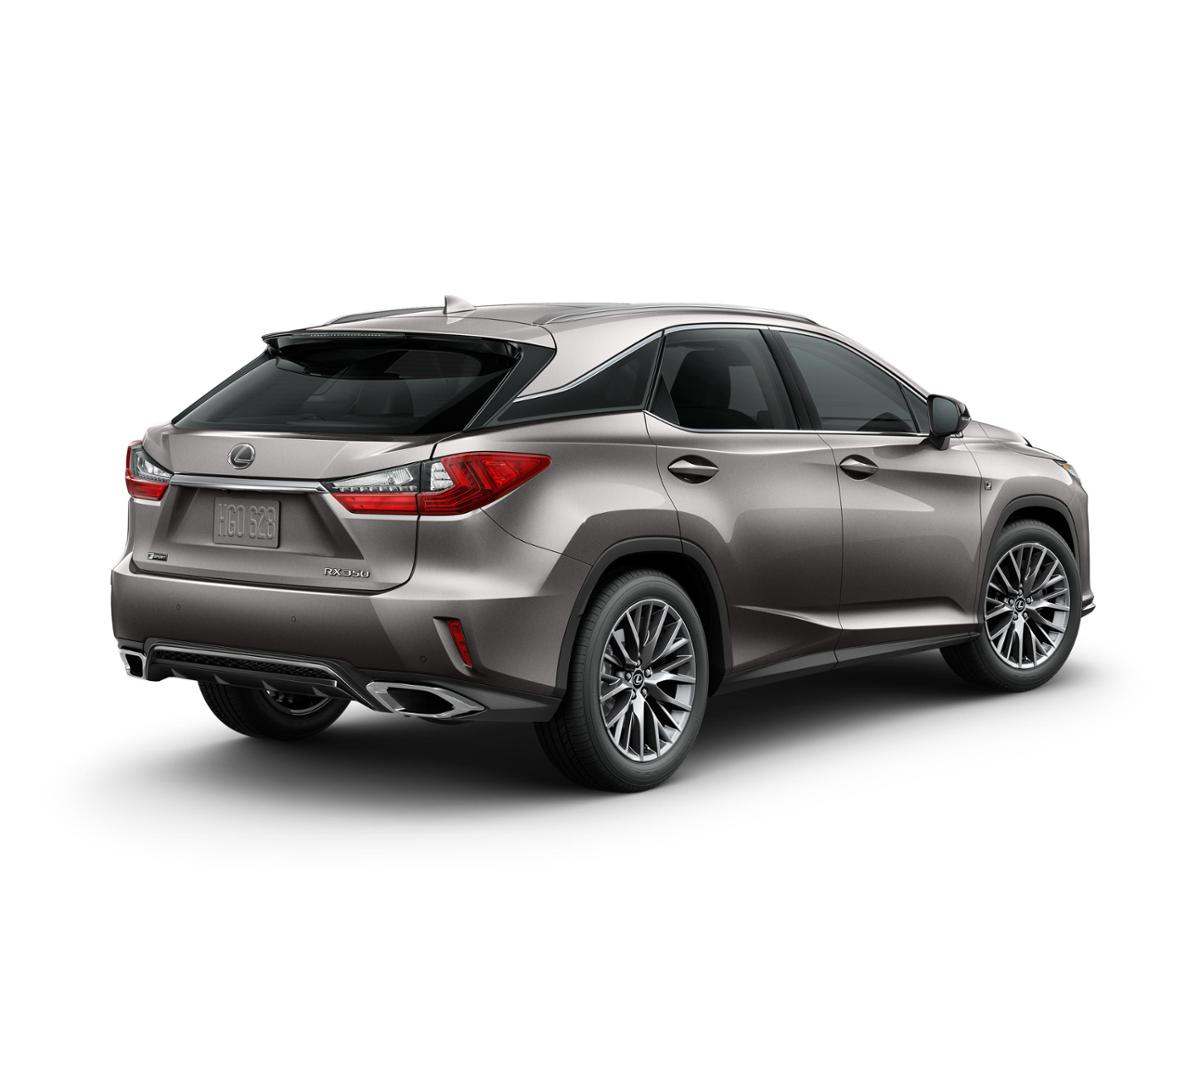 2017 Atomic Silver Rx 350 Lexus Rx 350 For Sale In Colma